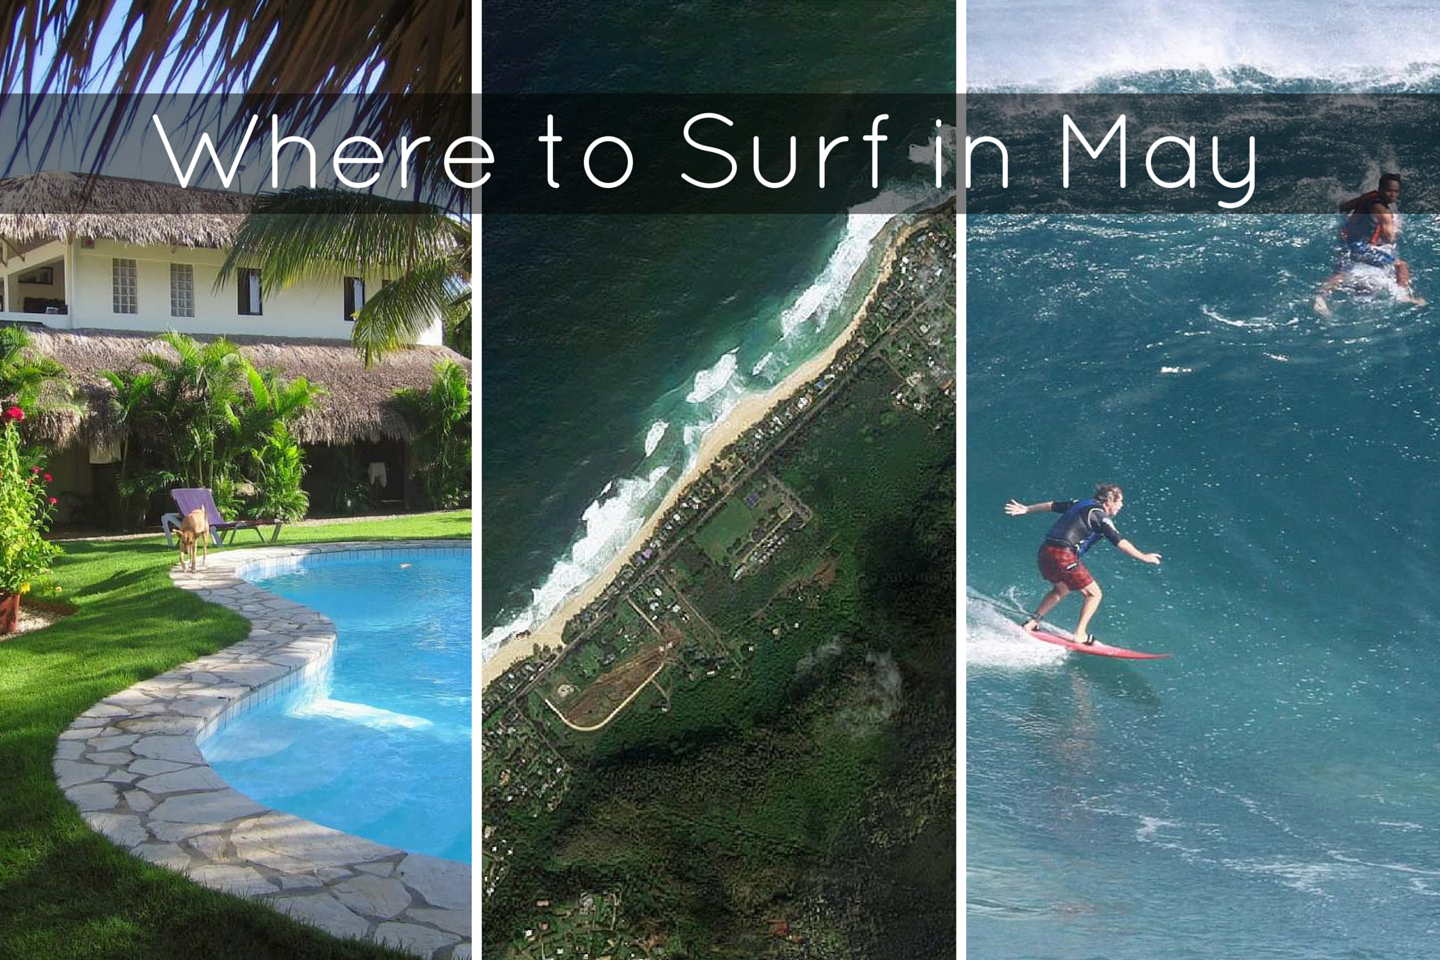 Where to Surf in May